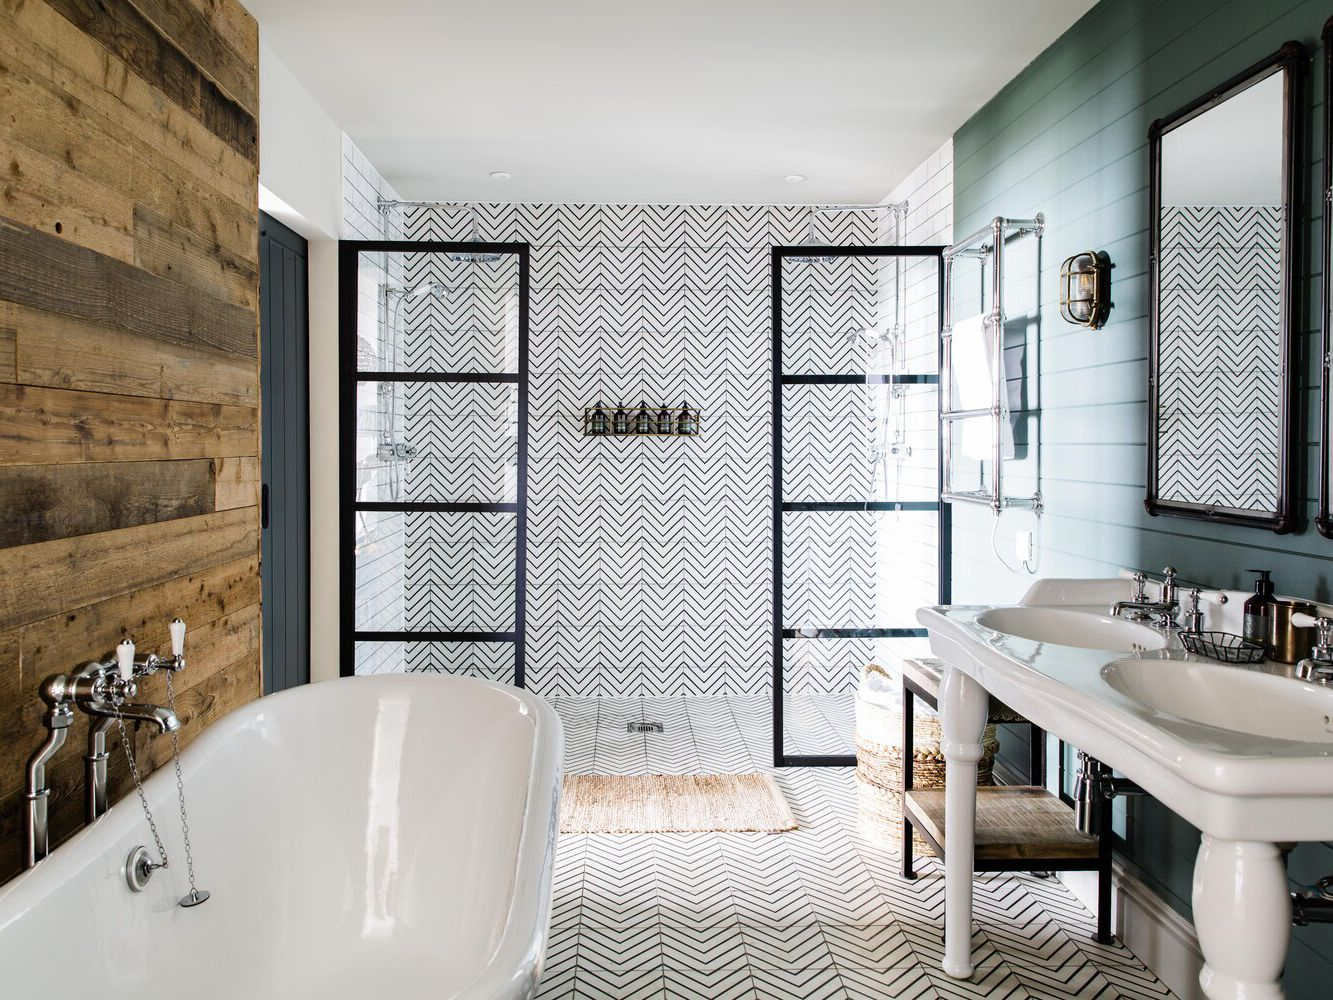 15 Stunning Shower Tile Ideas